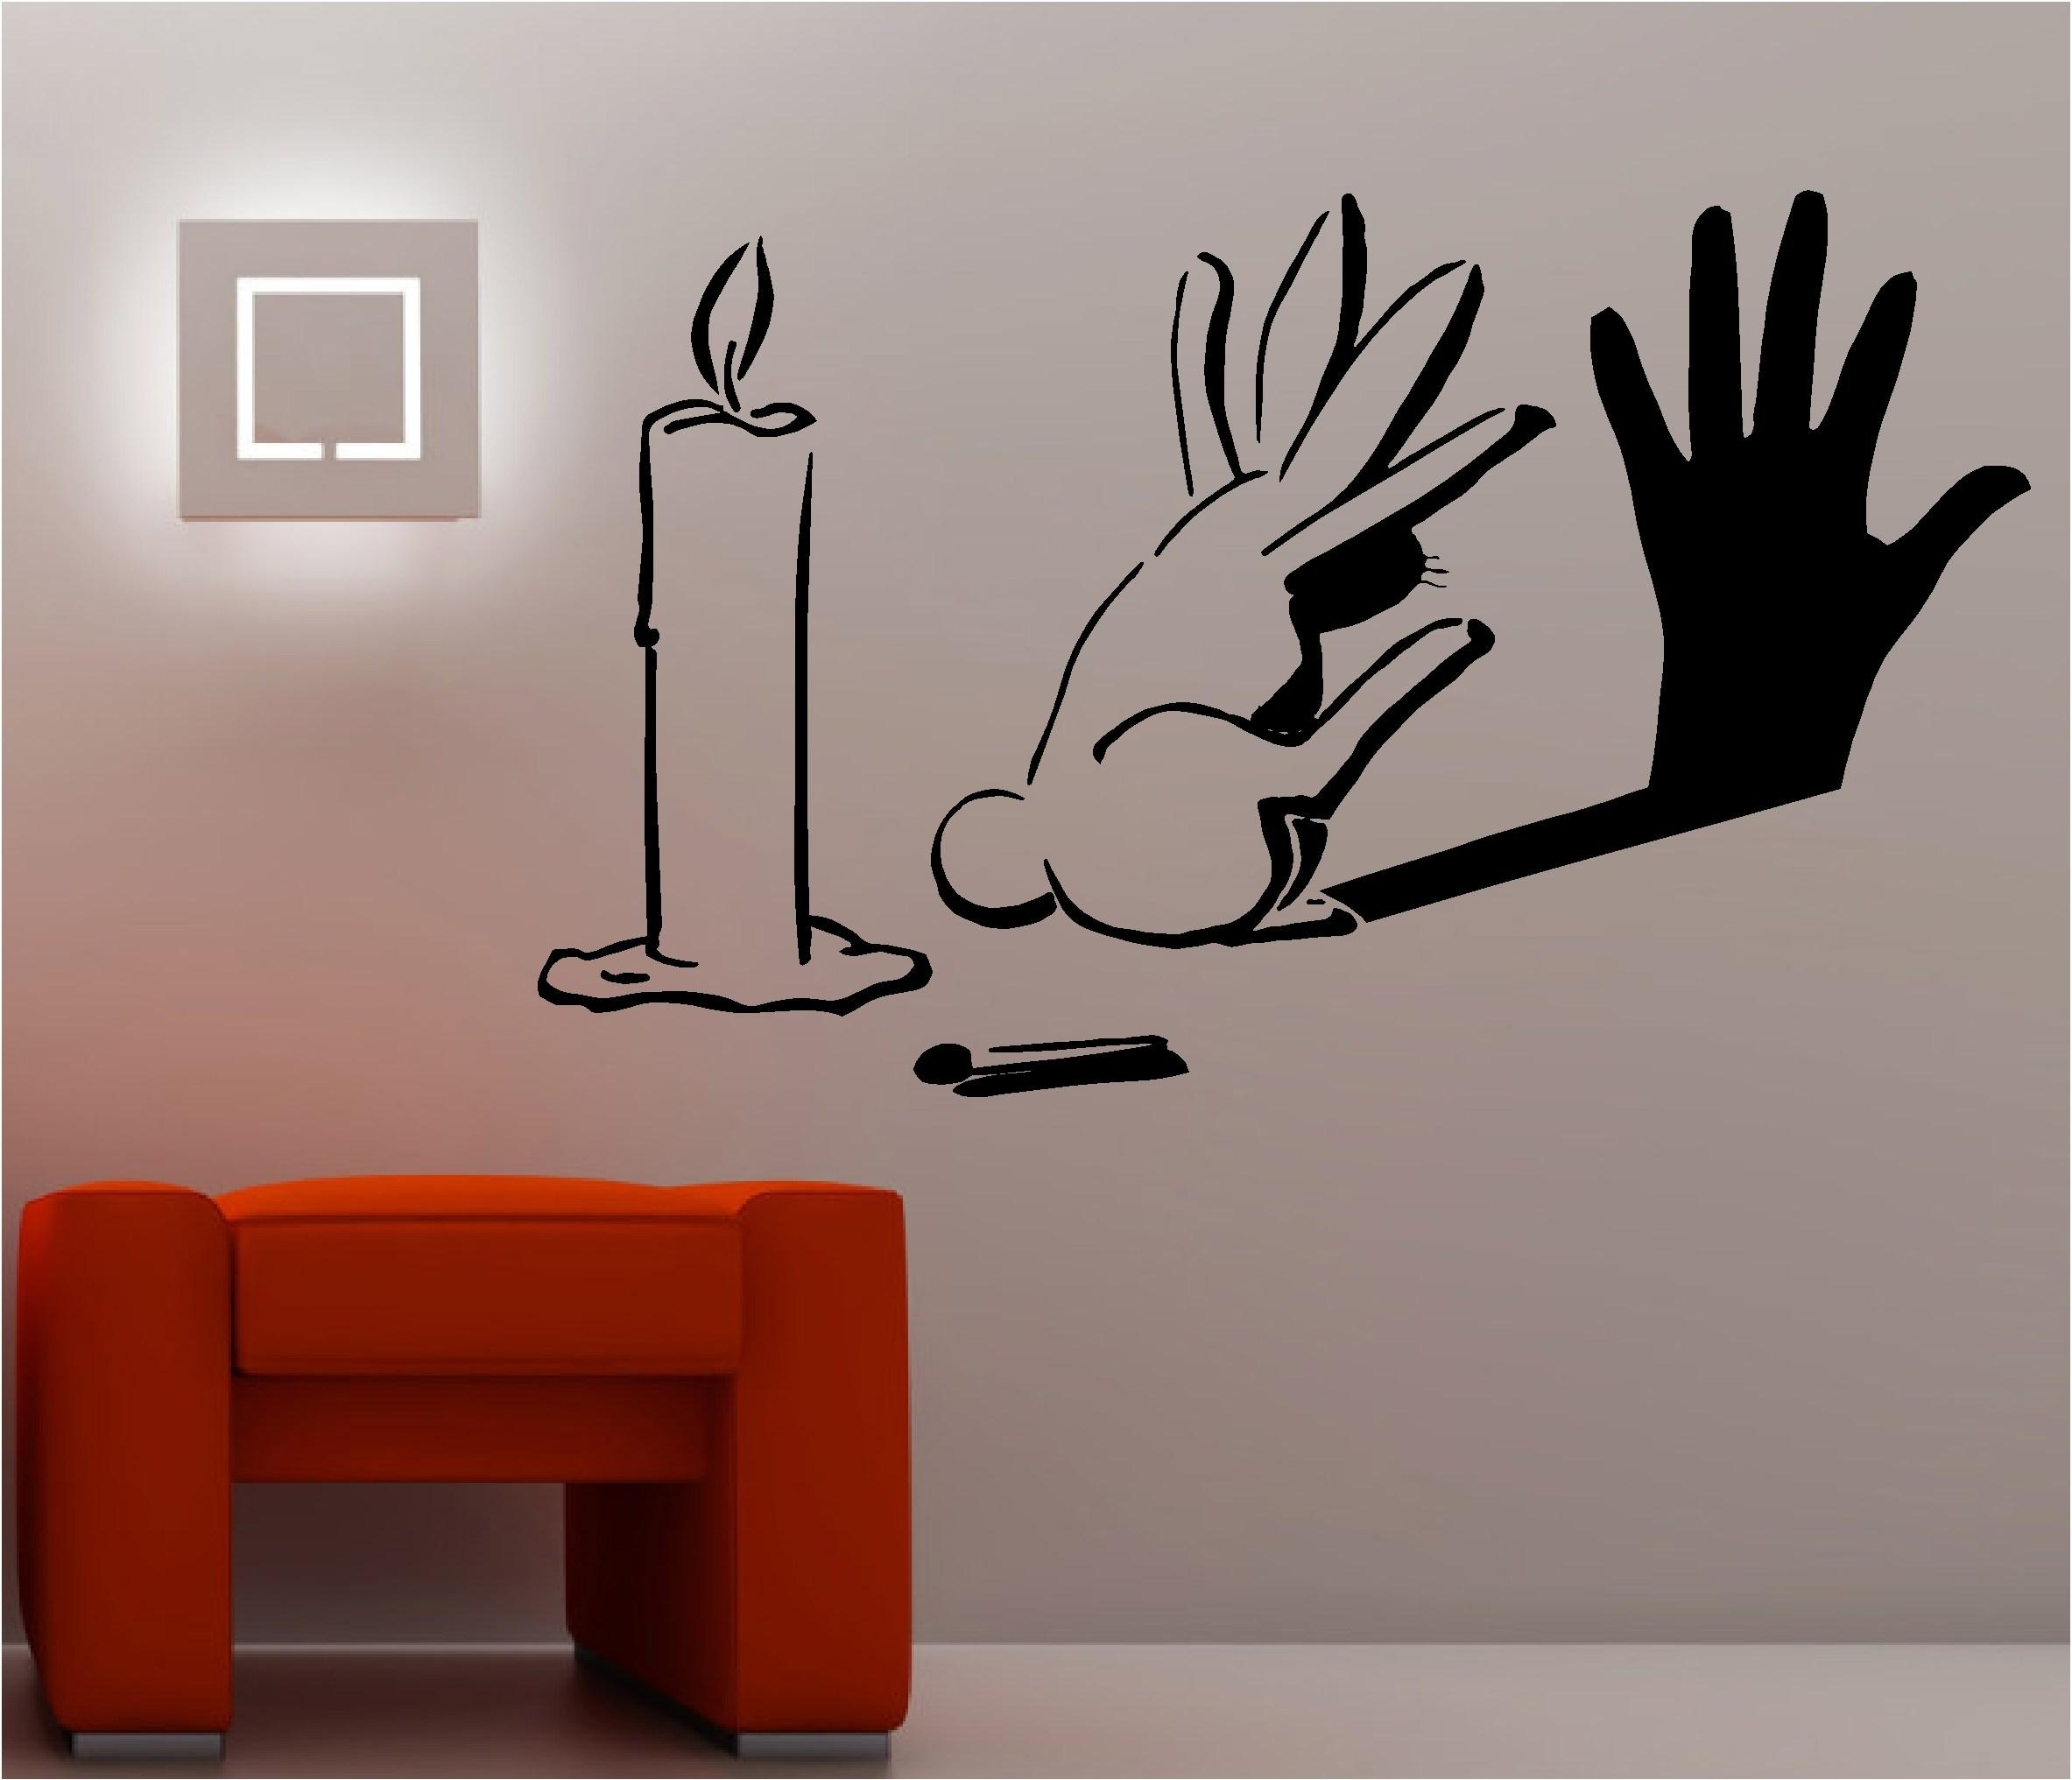 Outstanding Cool Wall Art Ideas For Guys Bedroom Cool Paint Ideas Intended For Wall Art For Guys (Image 12 of 20)